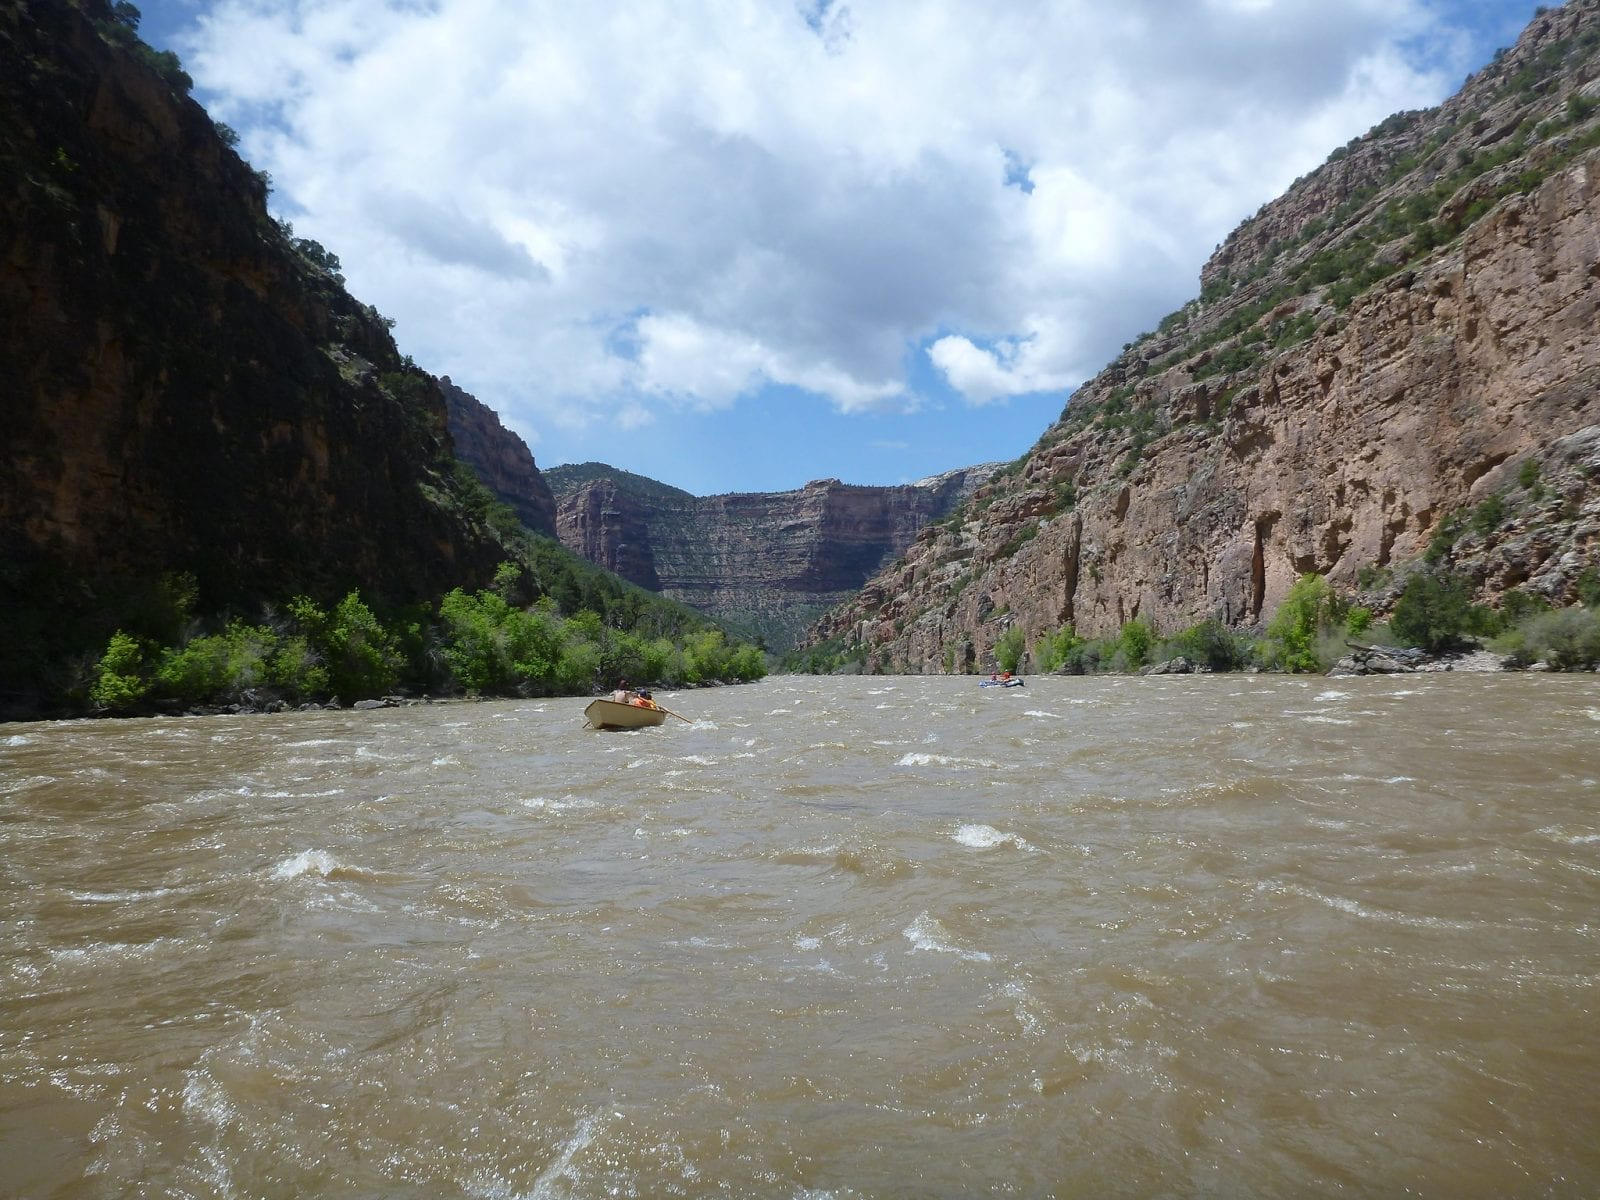 Image of a person rafting on the Yampa River in Colorado